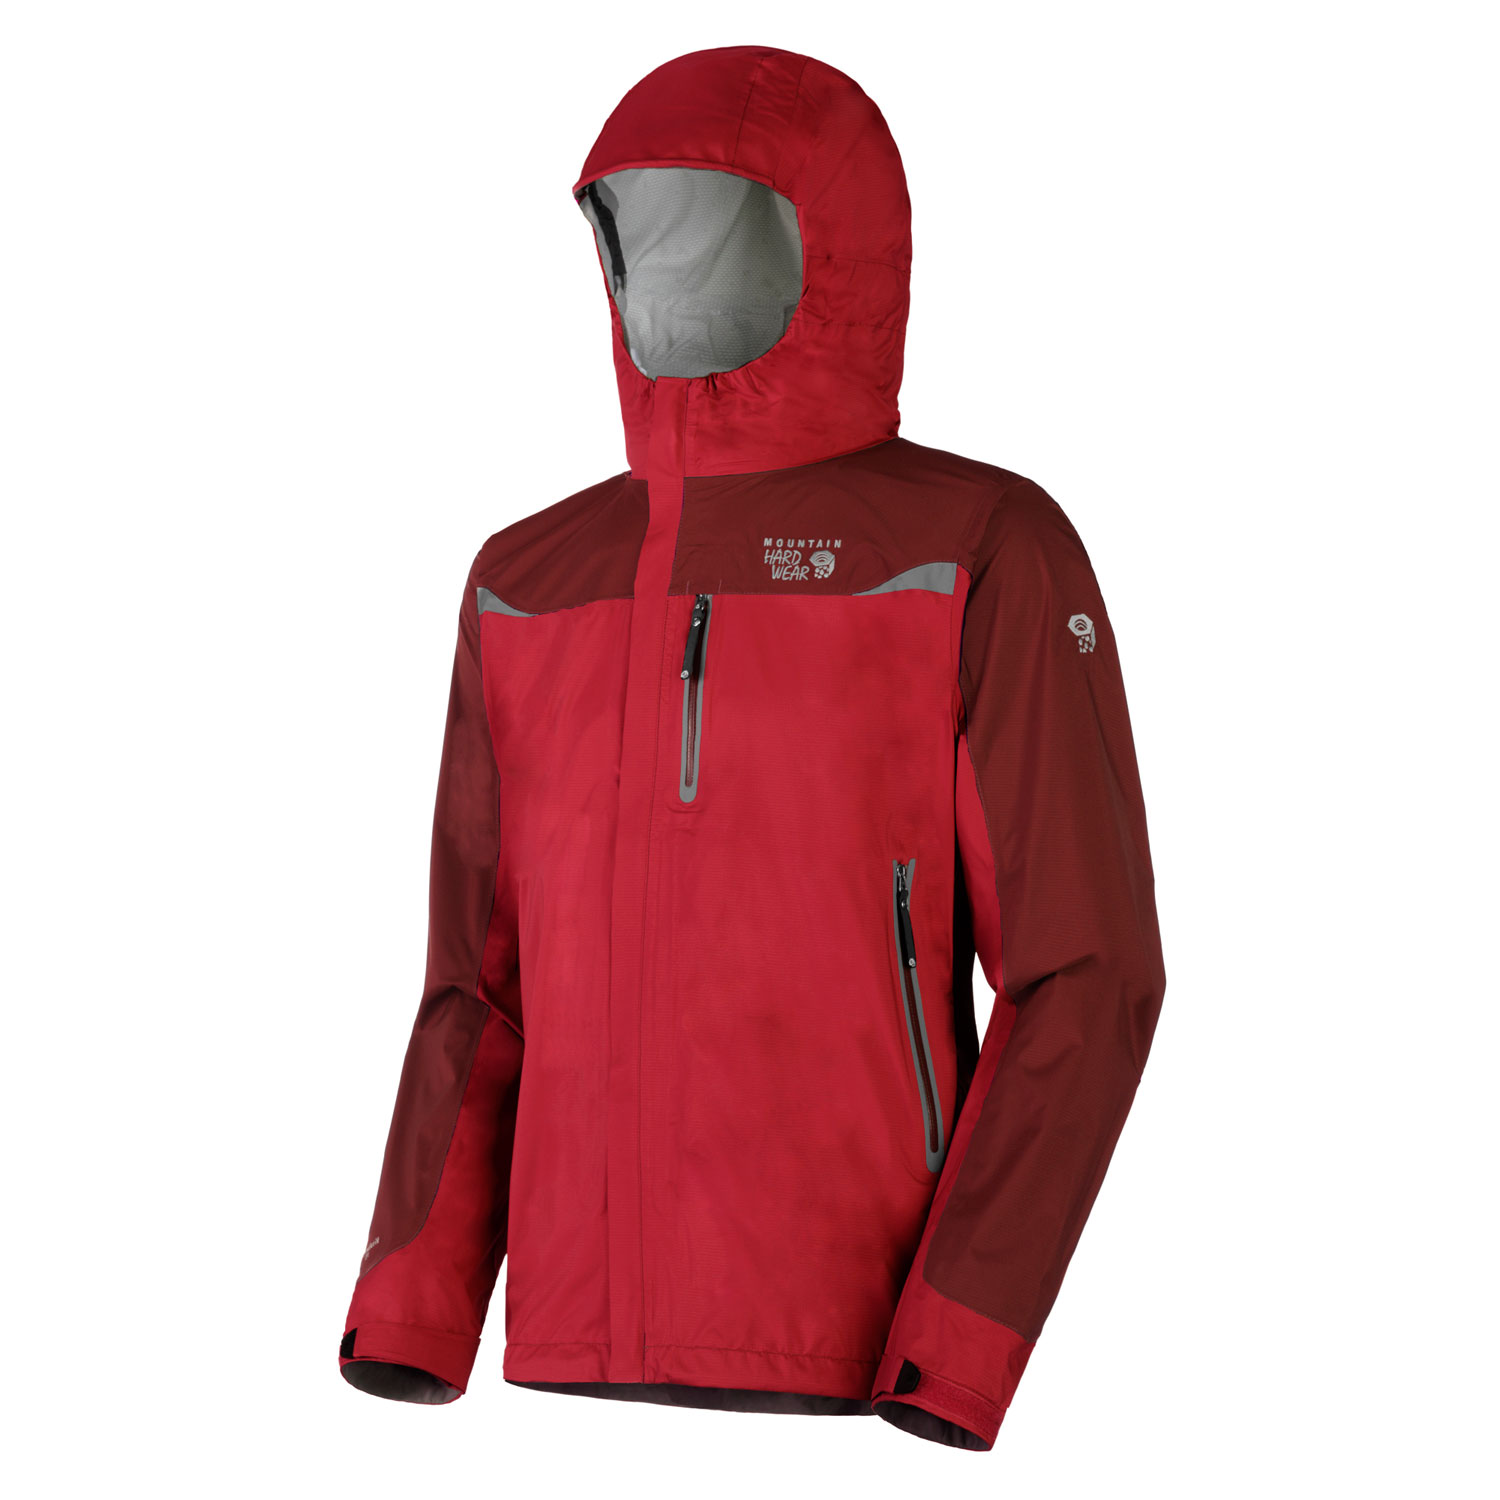 "Key Features of the Mountain Hardwear Stretch Cohesion Tech Shell Jacket: Avg weight: 13oz; 370g Center back length: 30"" Fabric: Ark Stretch 30D 2.5 Layer (100% nylon) All over stretch for comfort and freedom of movement Attached, roll-way Ergo hood fits over helmet, single-handed drawcord for quick adjustments Pit zips for ventilation Cuff tabs and hem drawcords for quick fit adjustments Micro-Chamois - lined chin guard eliminates zipper chafe - $118.95"